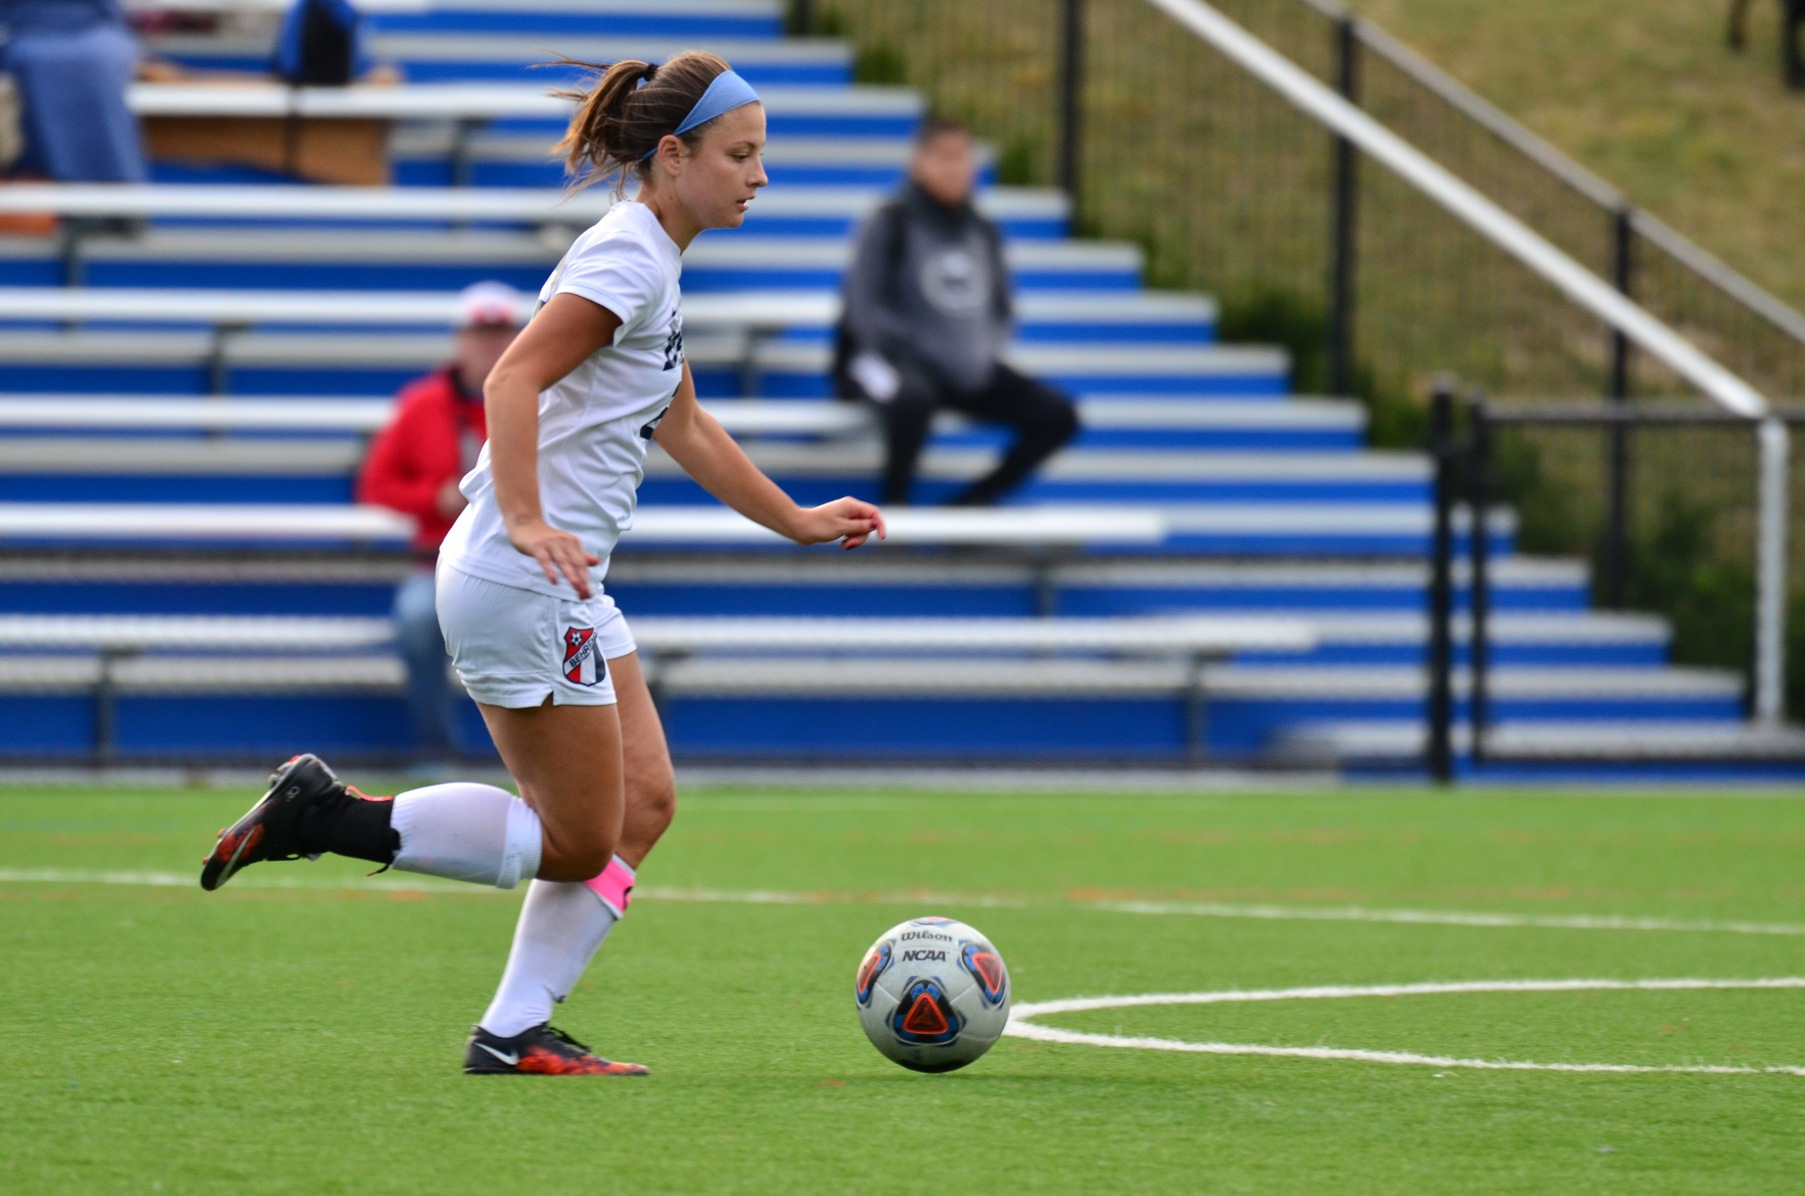 Oberlander Nets Hat Trick; Lions Fall to W&J